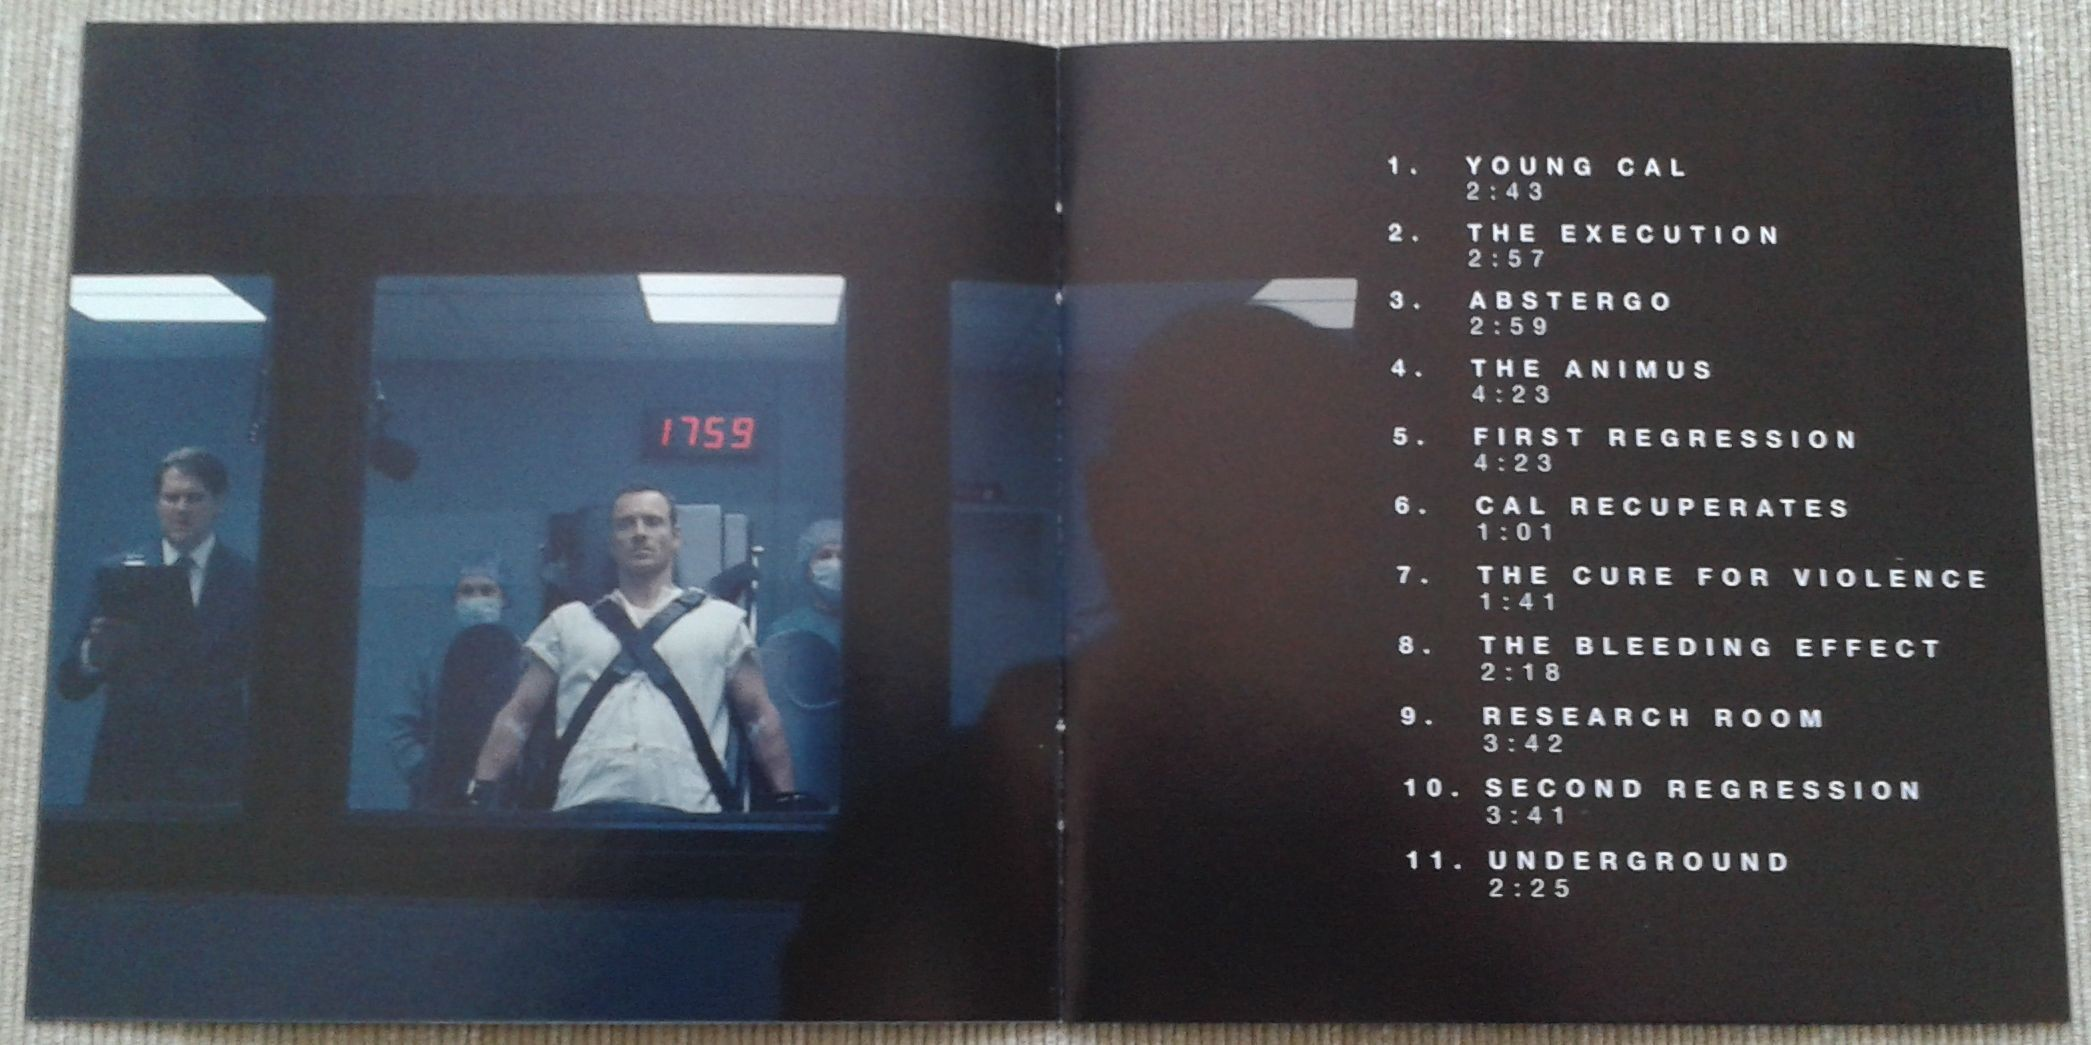 6. Assassins Creed booklet 2.jpg